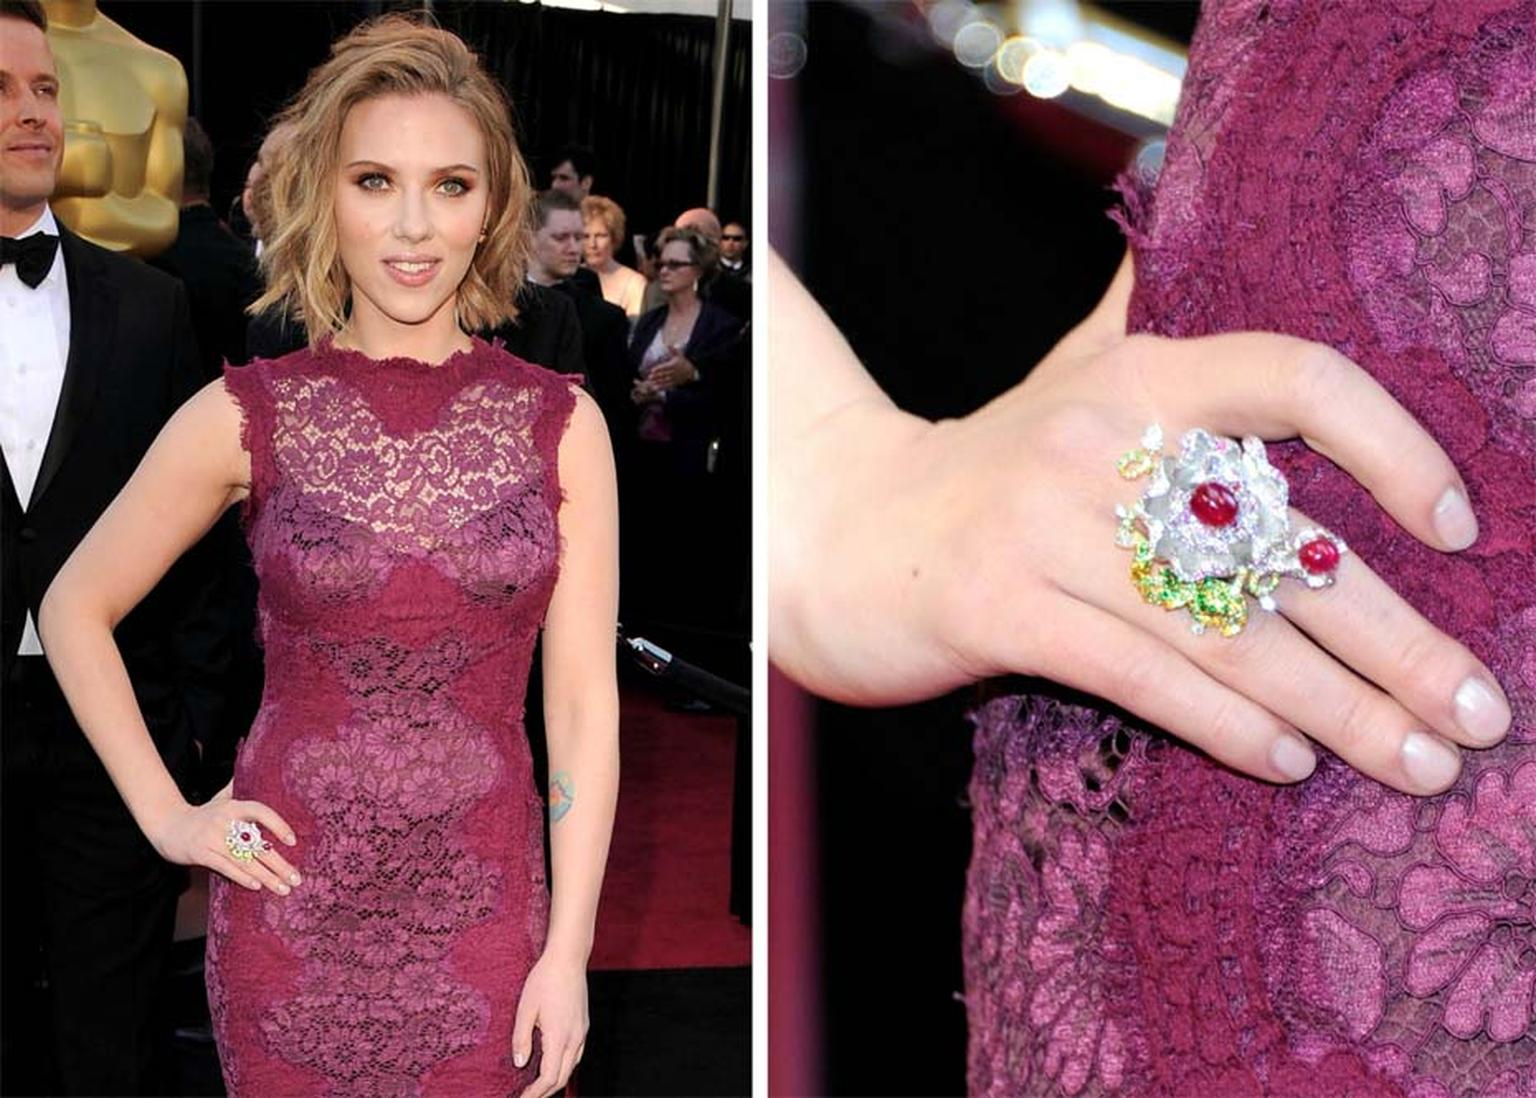 Scarlett Johansson wore Anna Hu's Dragon Flower ring, featuring rubies, sapphires and diamonds set in white and yellow gold, to the 2011 Oscars ceremony.